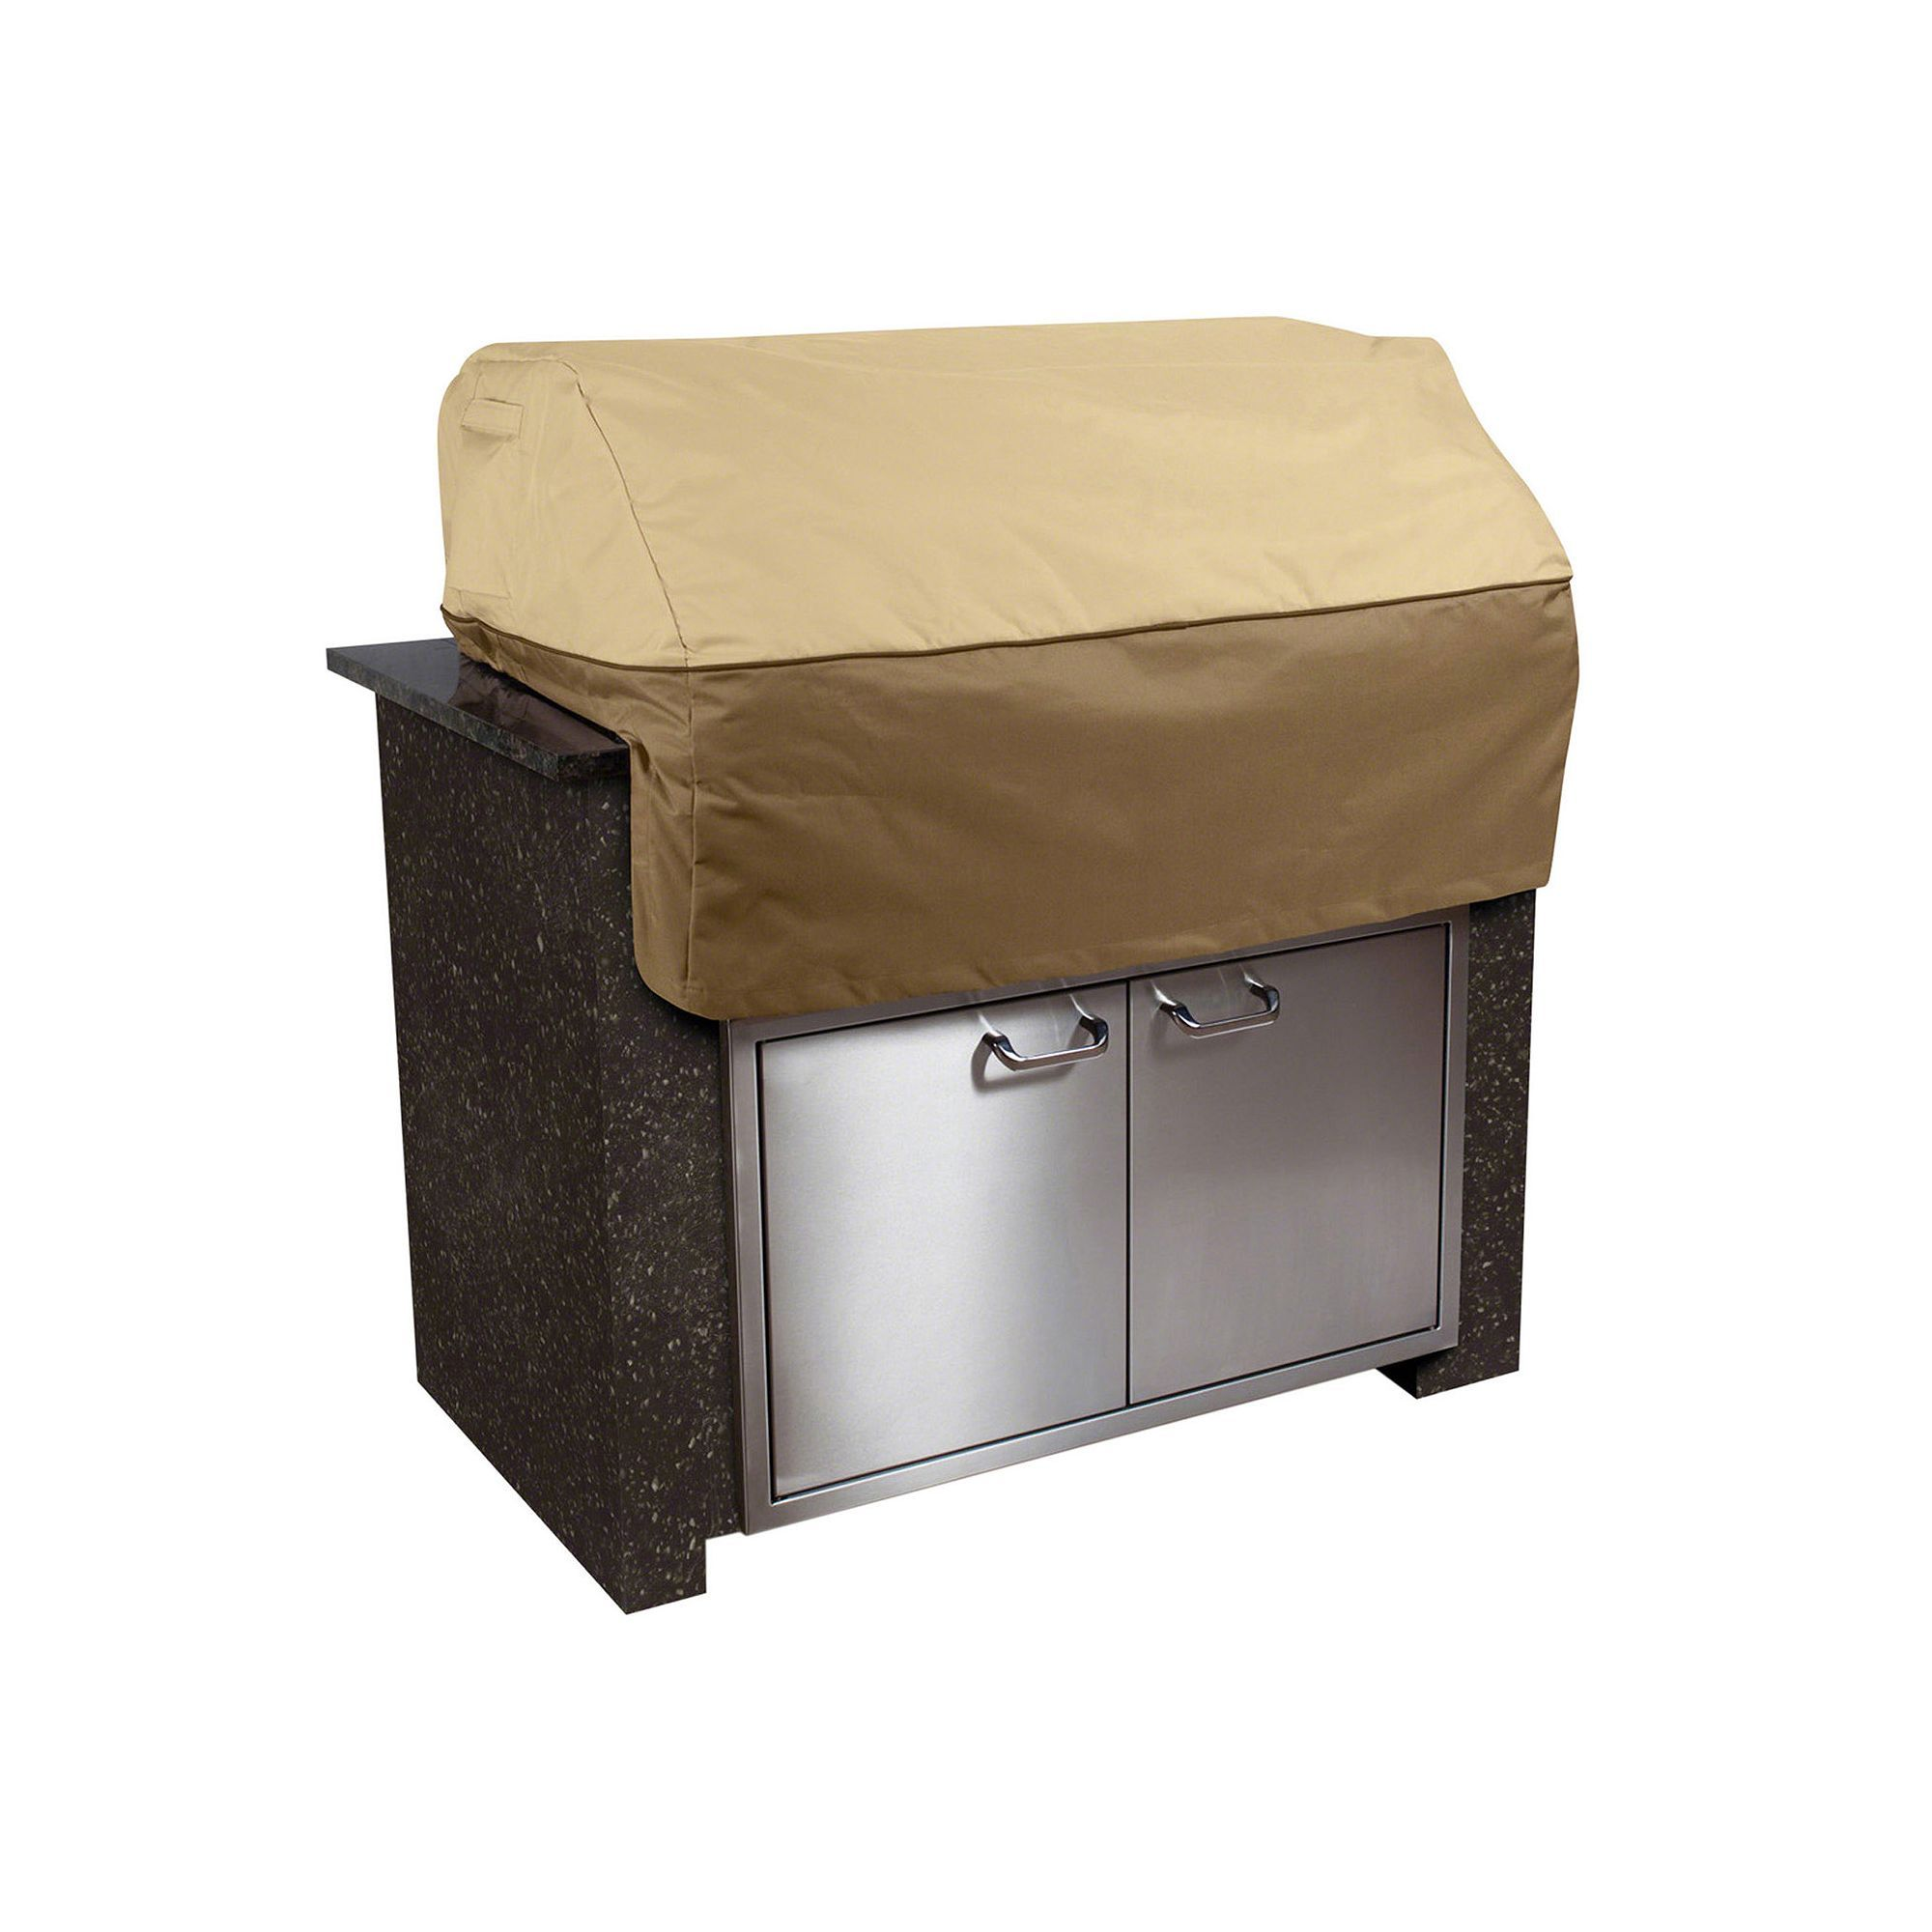 Clic Accessories Veranda 38 In Island Grill Cover Brown